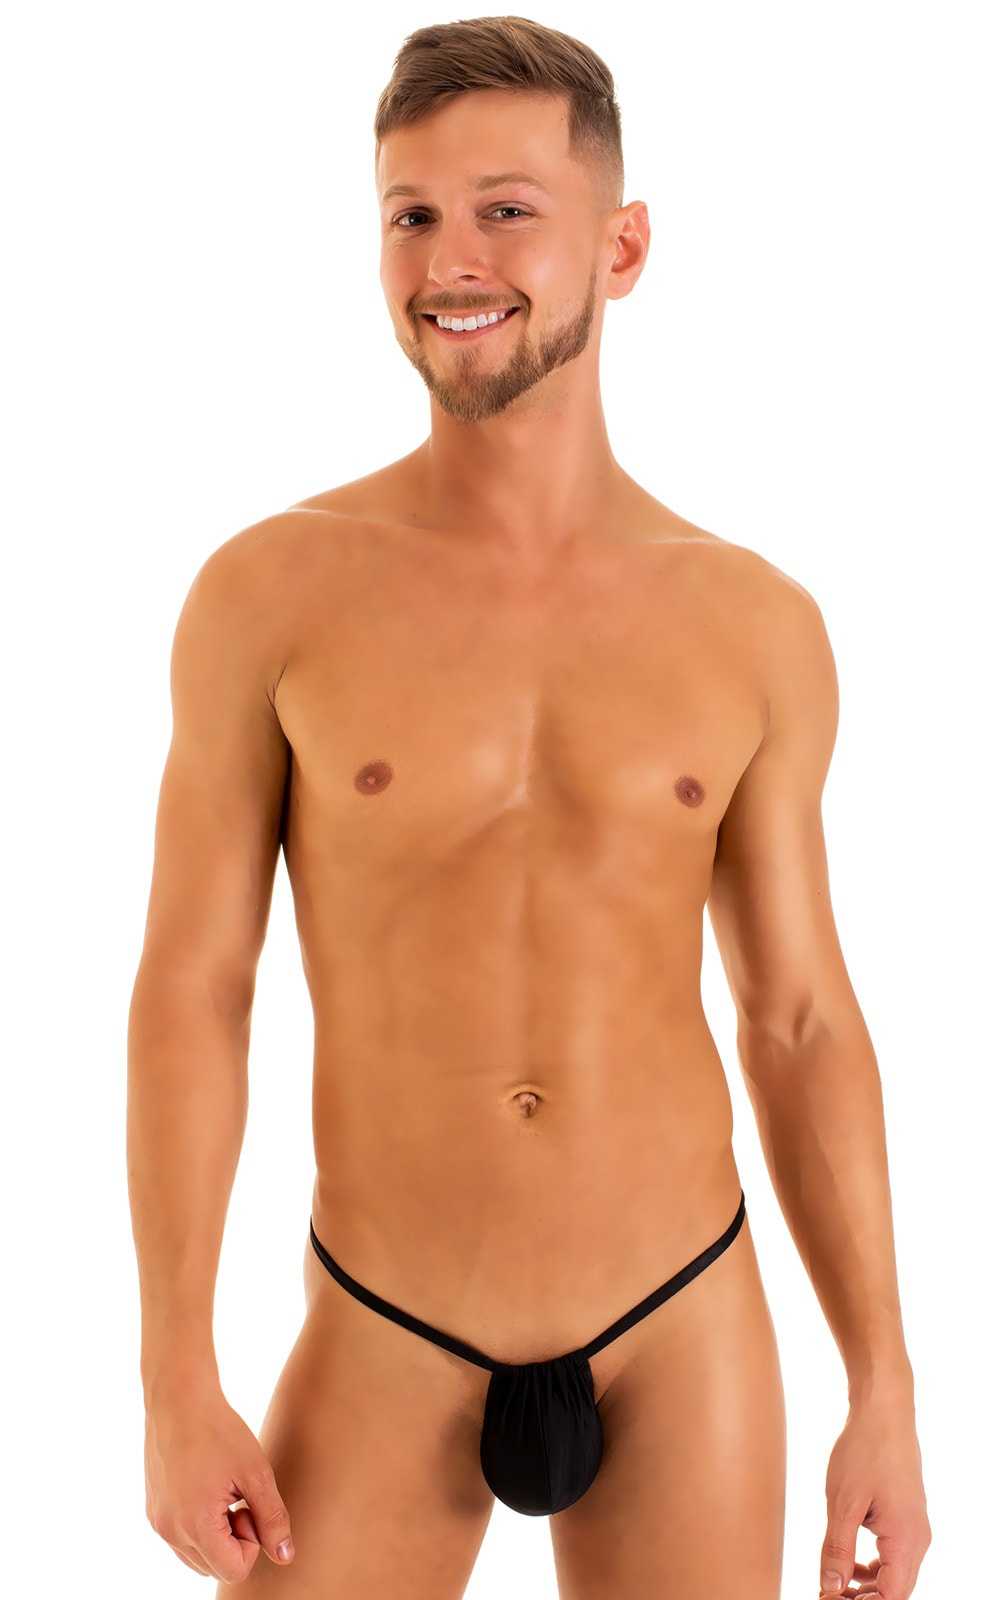 G String Swimsuit - Adjustable Pouch in Black tricot-nylon-lycra 3